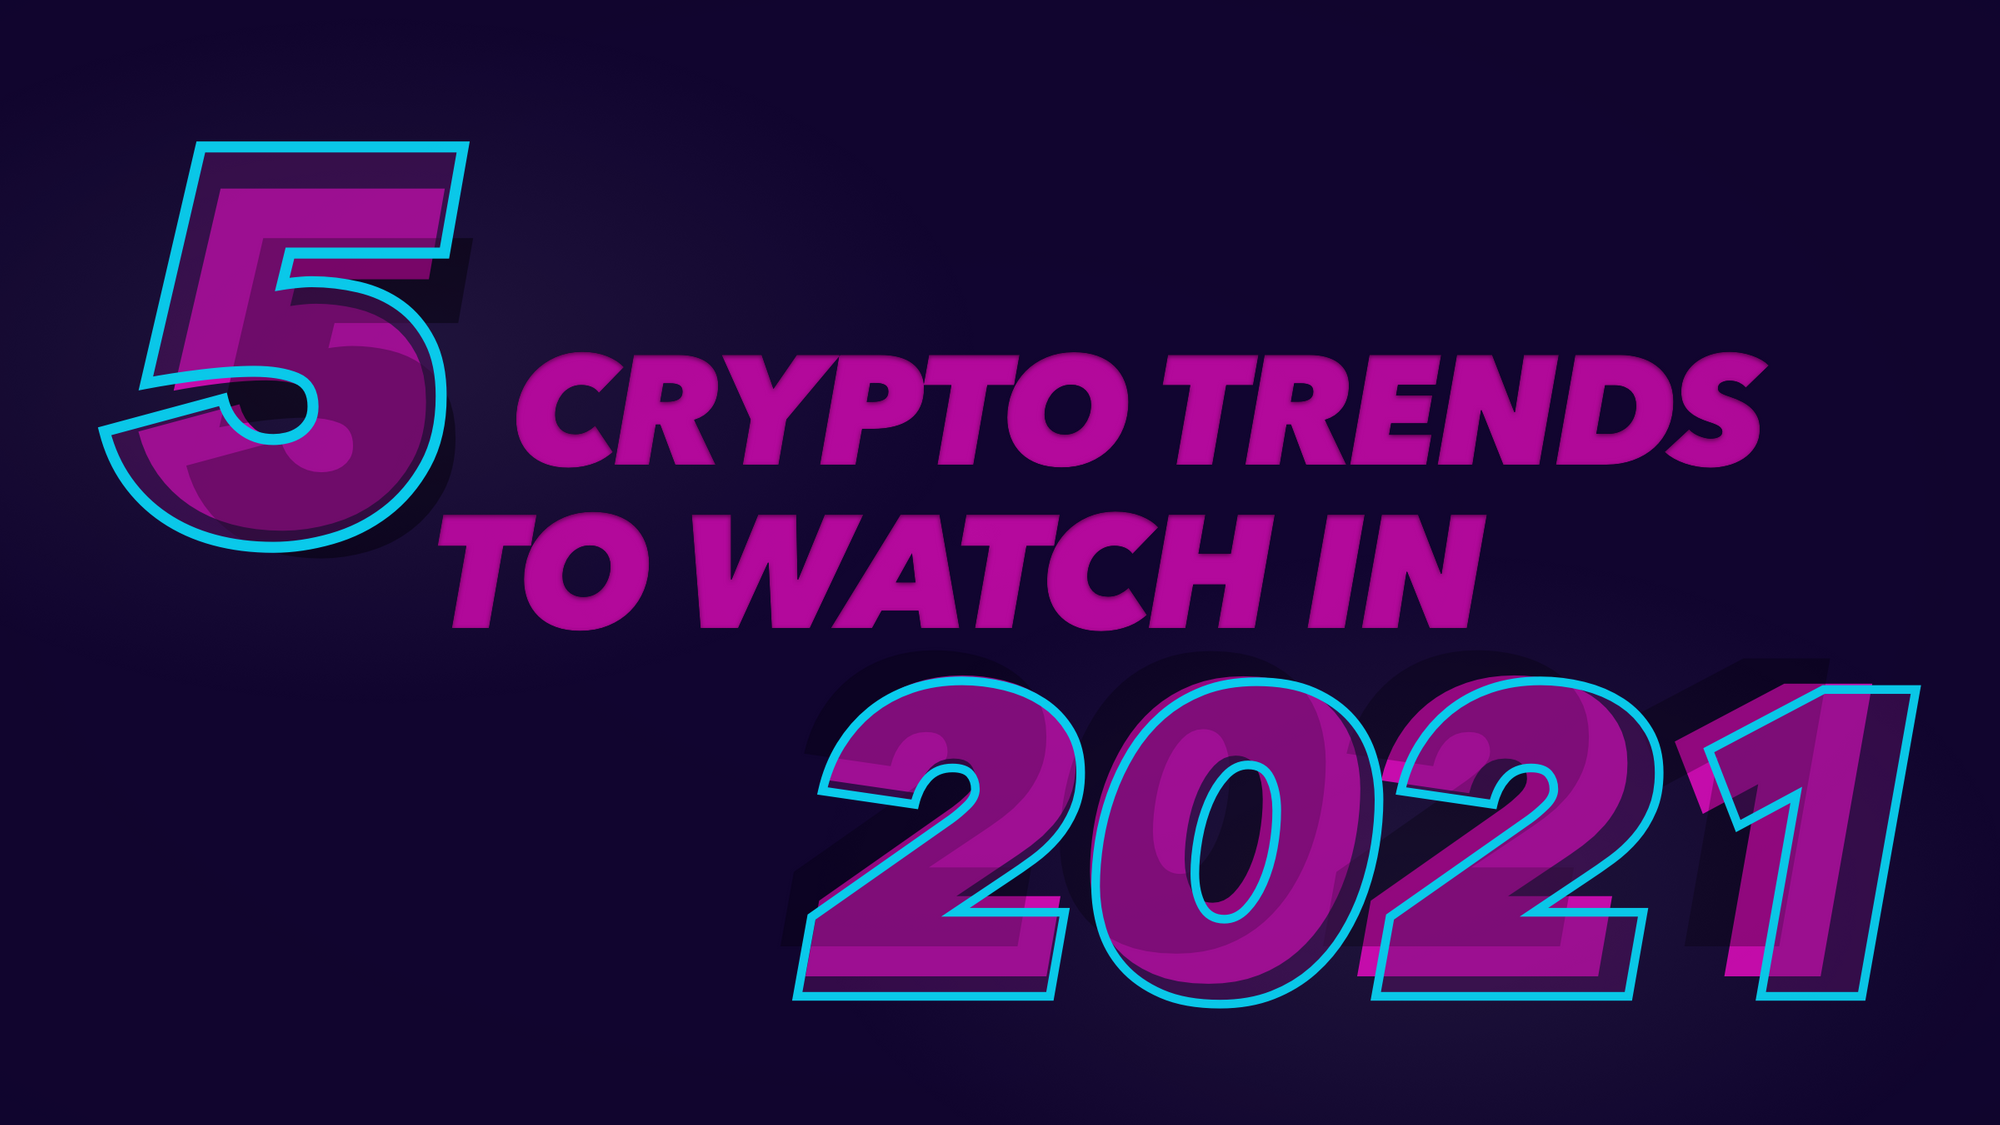 [Coinlist] Five crypto trends to watch in 2021 - AZCoin News